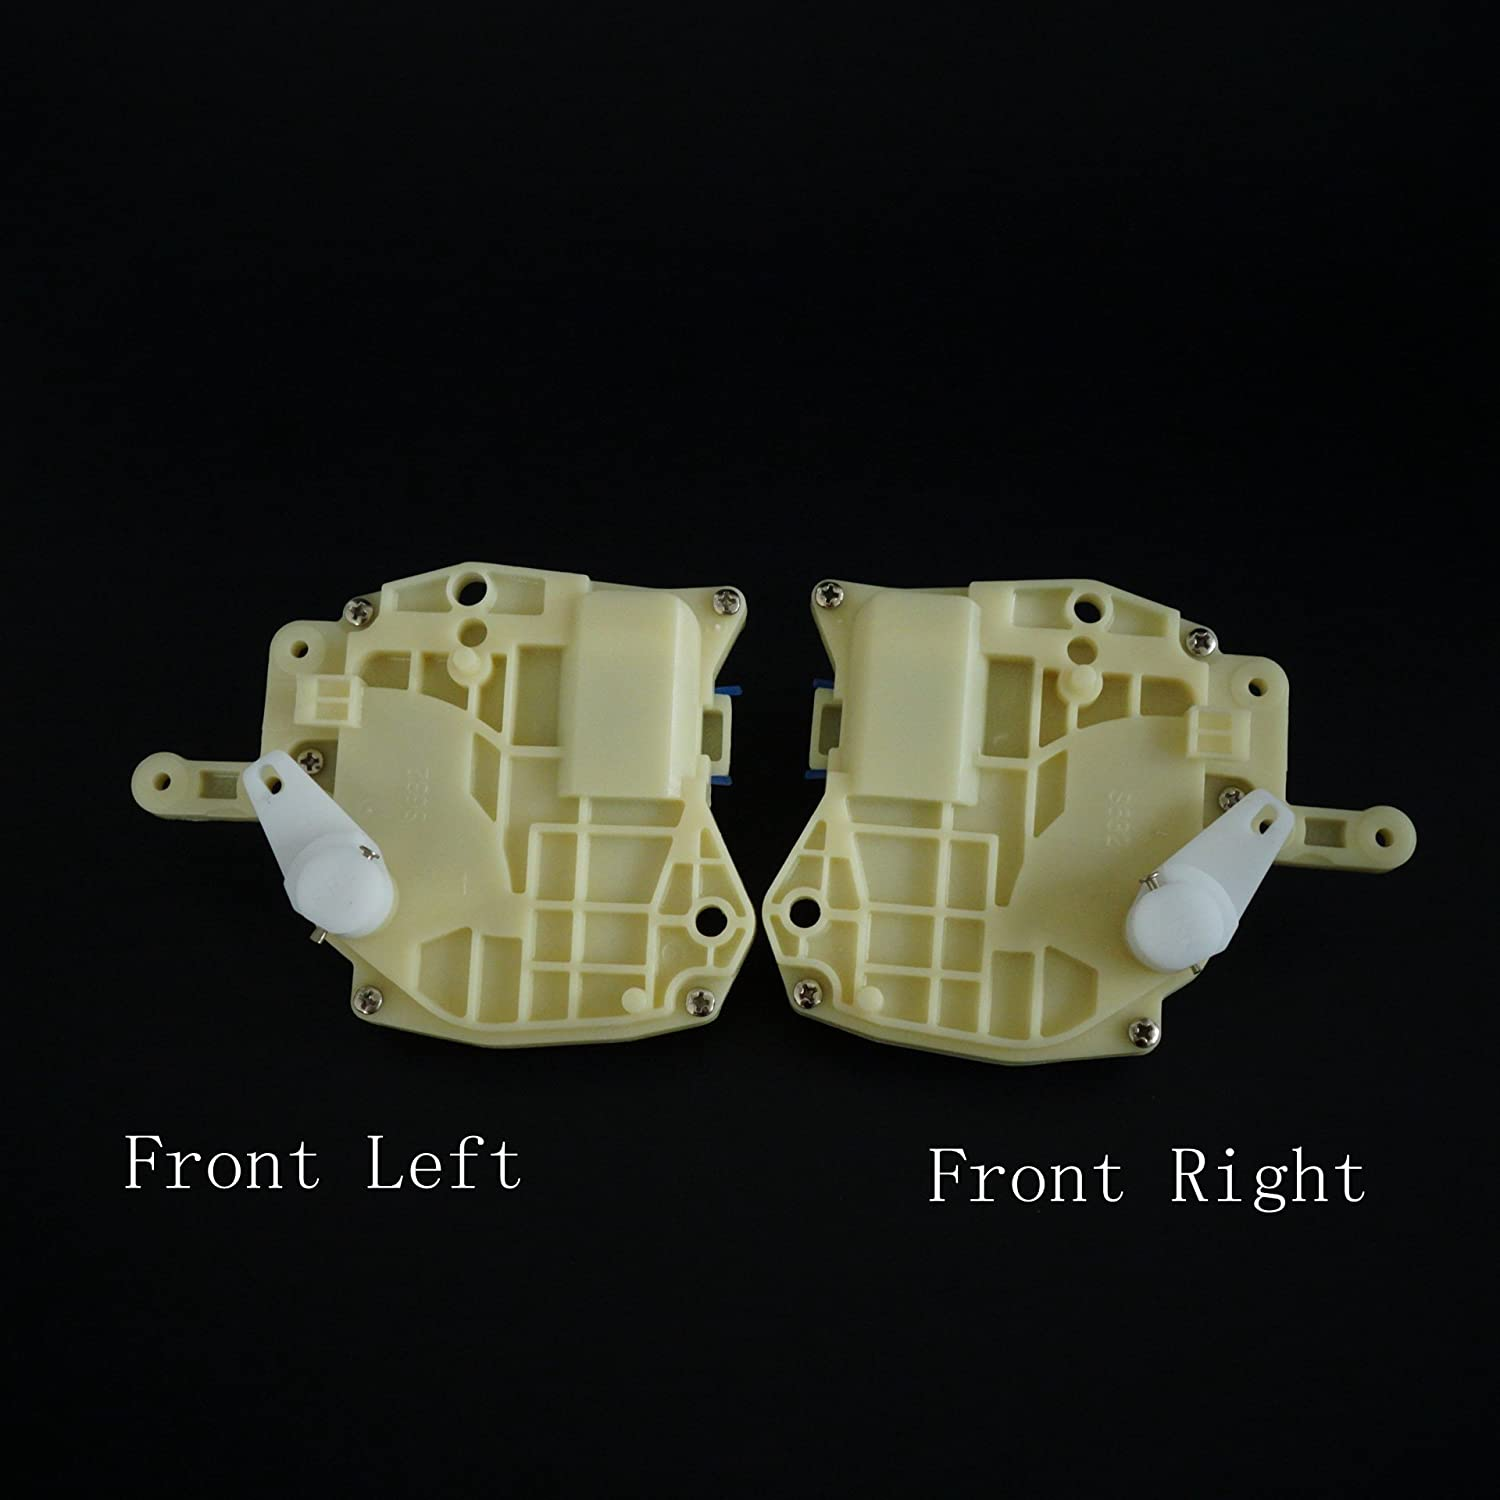 1 Set Rear Left//Right Door Lock Actuator for Honda Odyssey Civic 72655-S84-A01 72615-S84-A01 Non Integrated